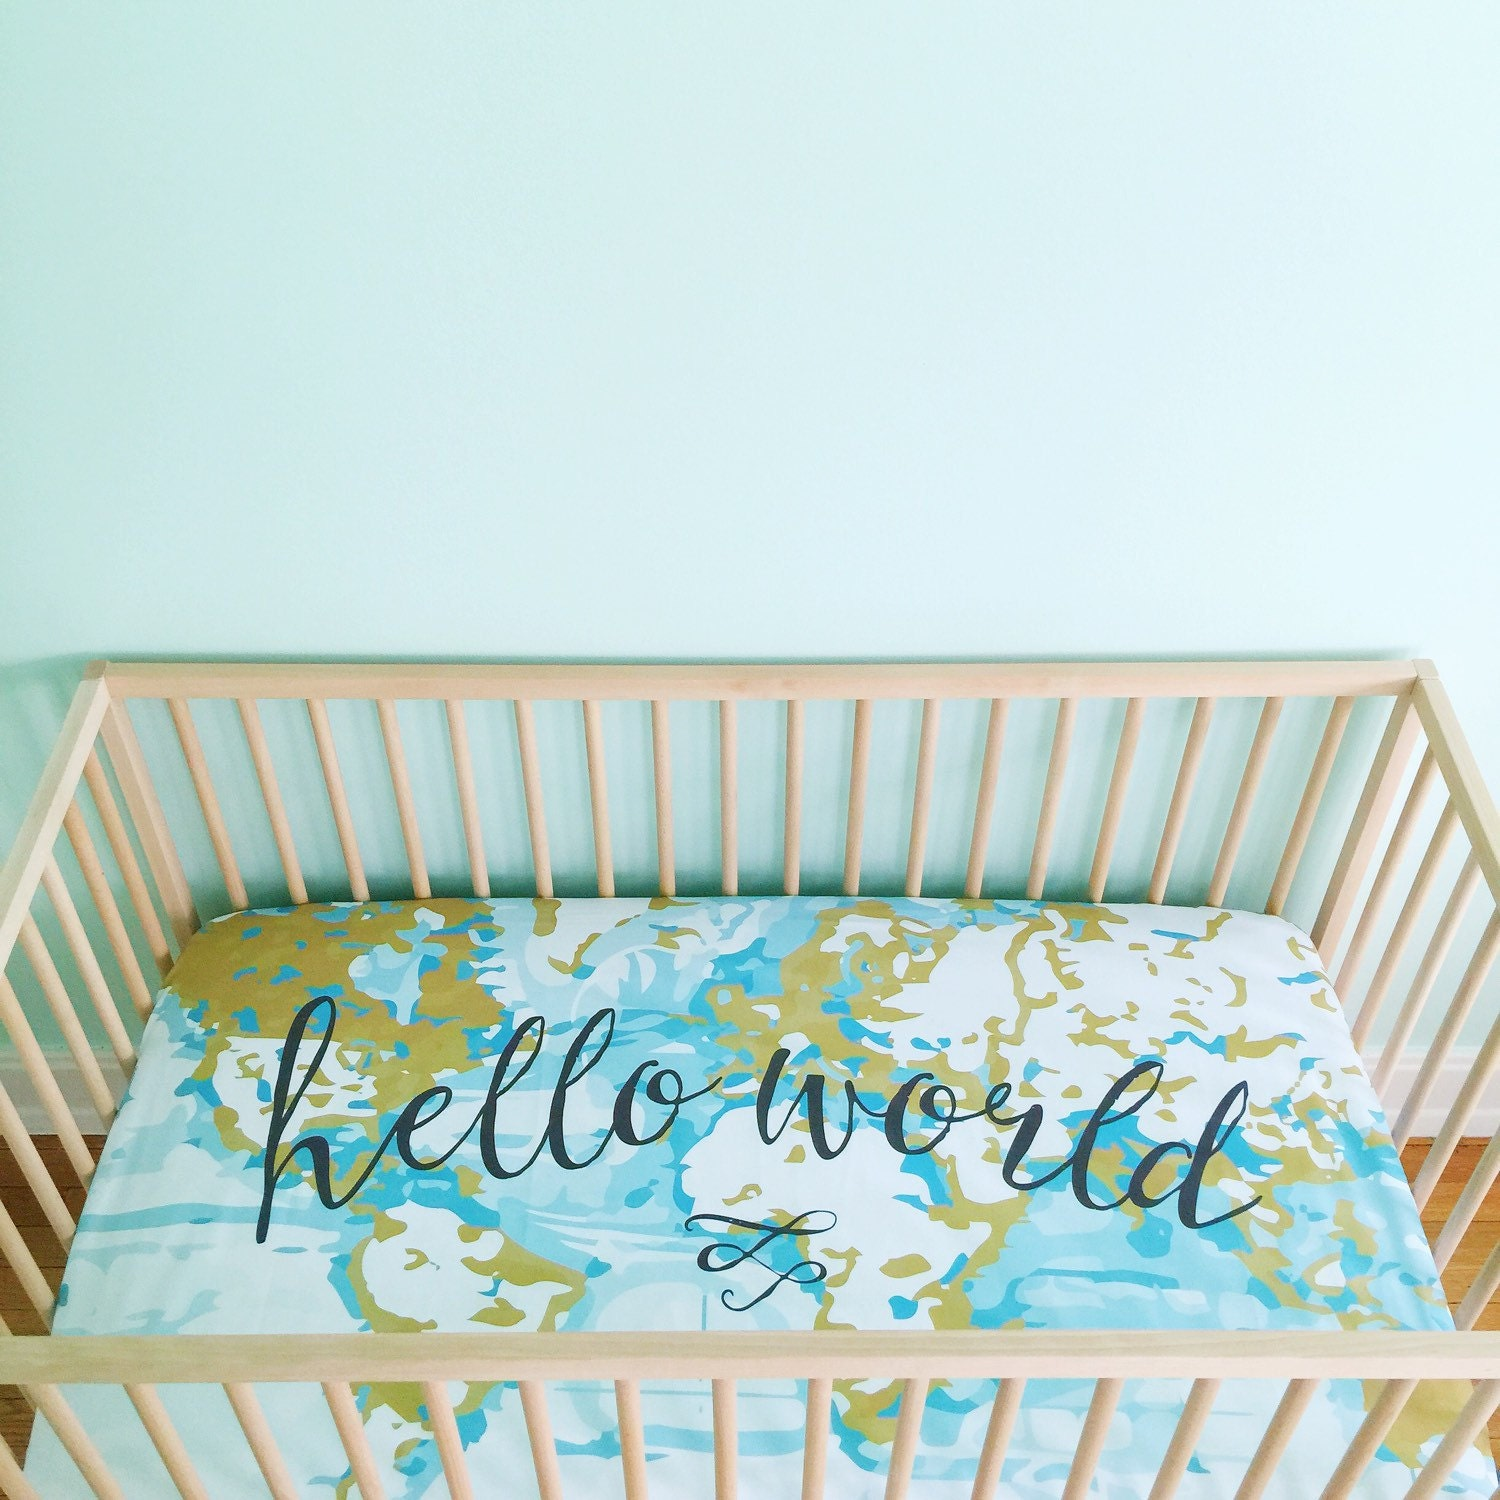 Crib bedding sale uk - Crib Sheet Aqua Hello World Fitted Crib Sheet Baby Bedding Crib Bedding Minky Crib Sheet Crib Sheets Map Crib Sheet Adventure Nursery